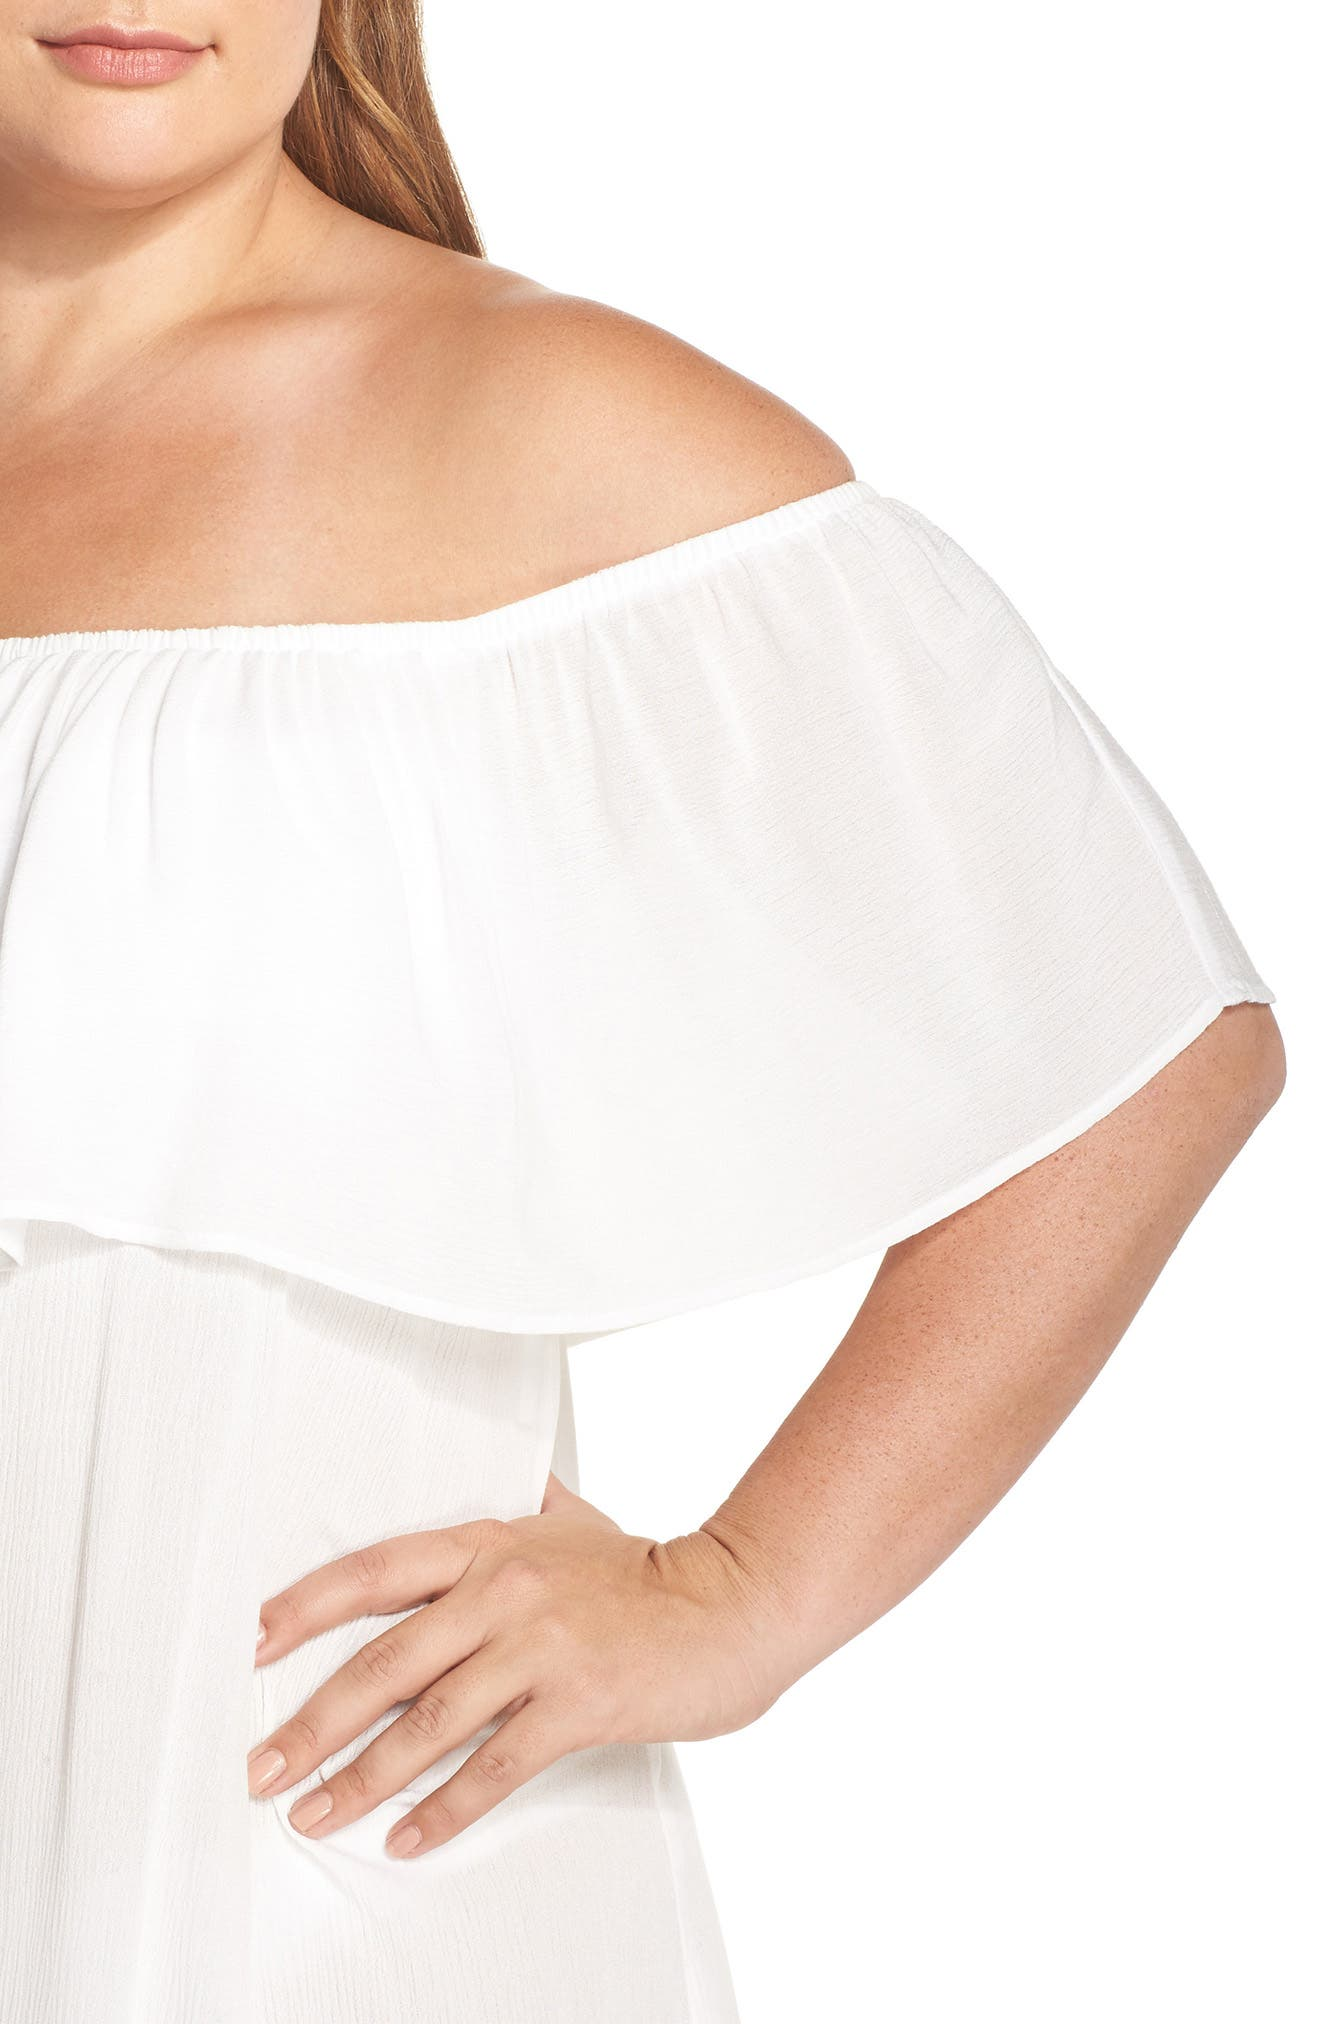 Alternate Image 4  - Becca Etc. Southern Belle Off the Shoulder Cover-Up Dress (Plus Size)